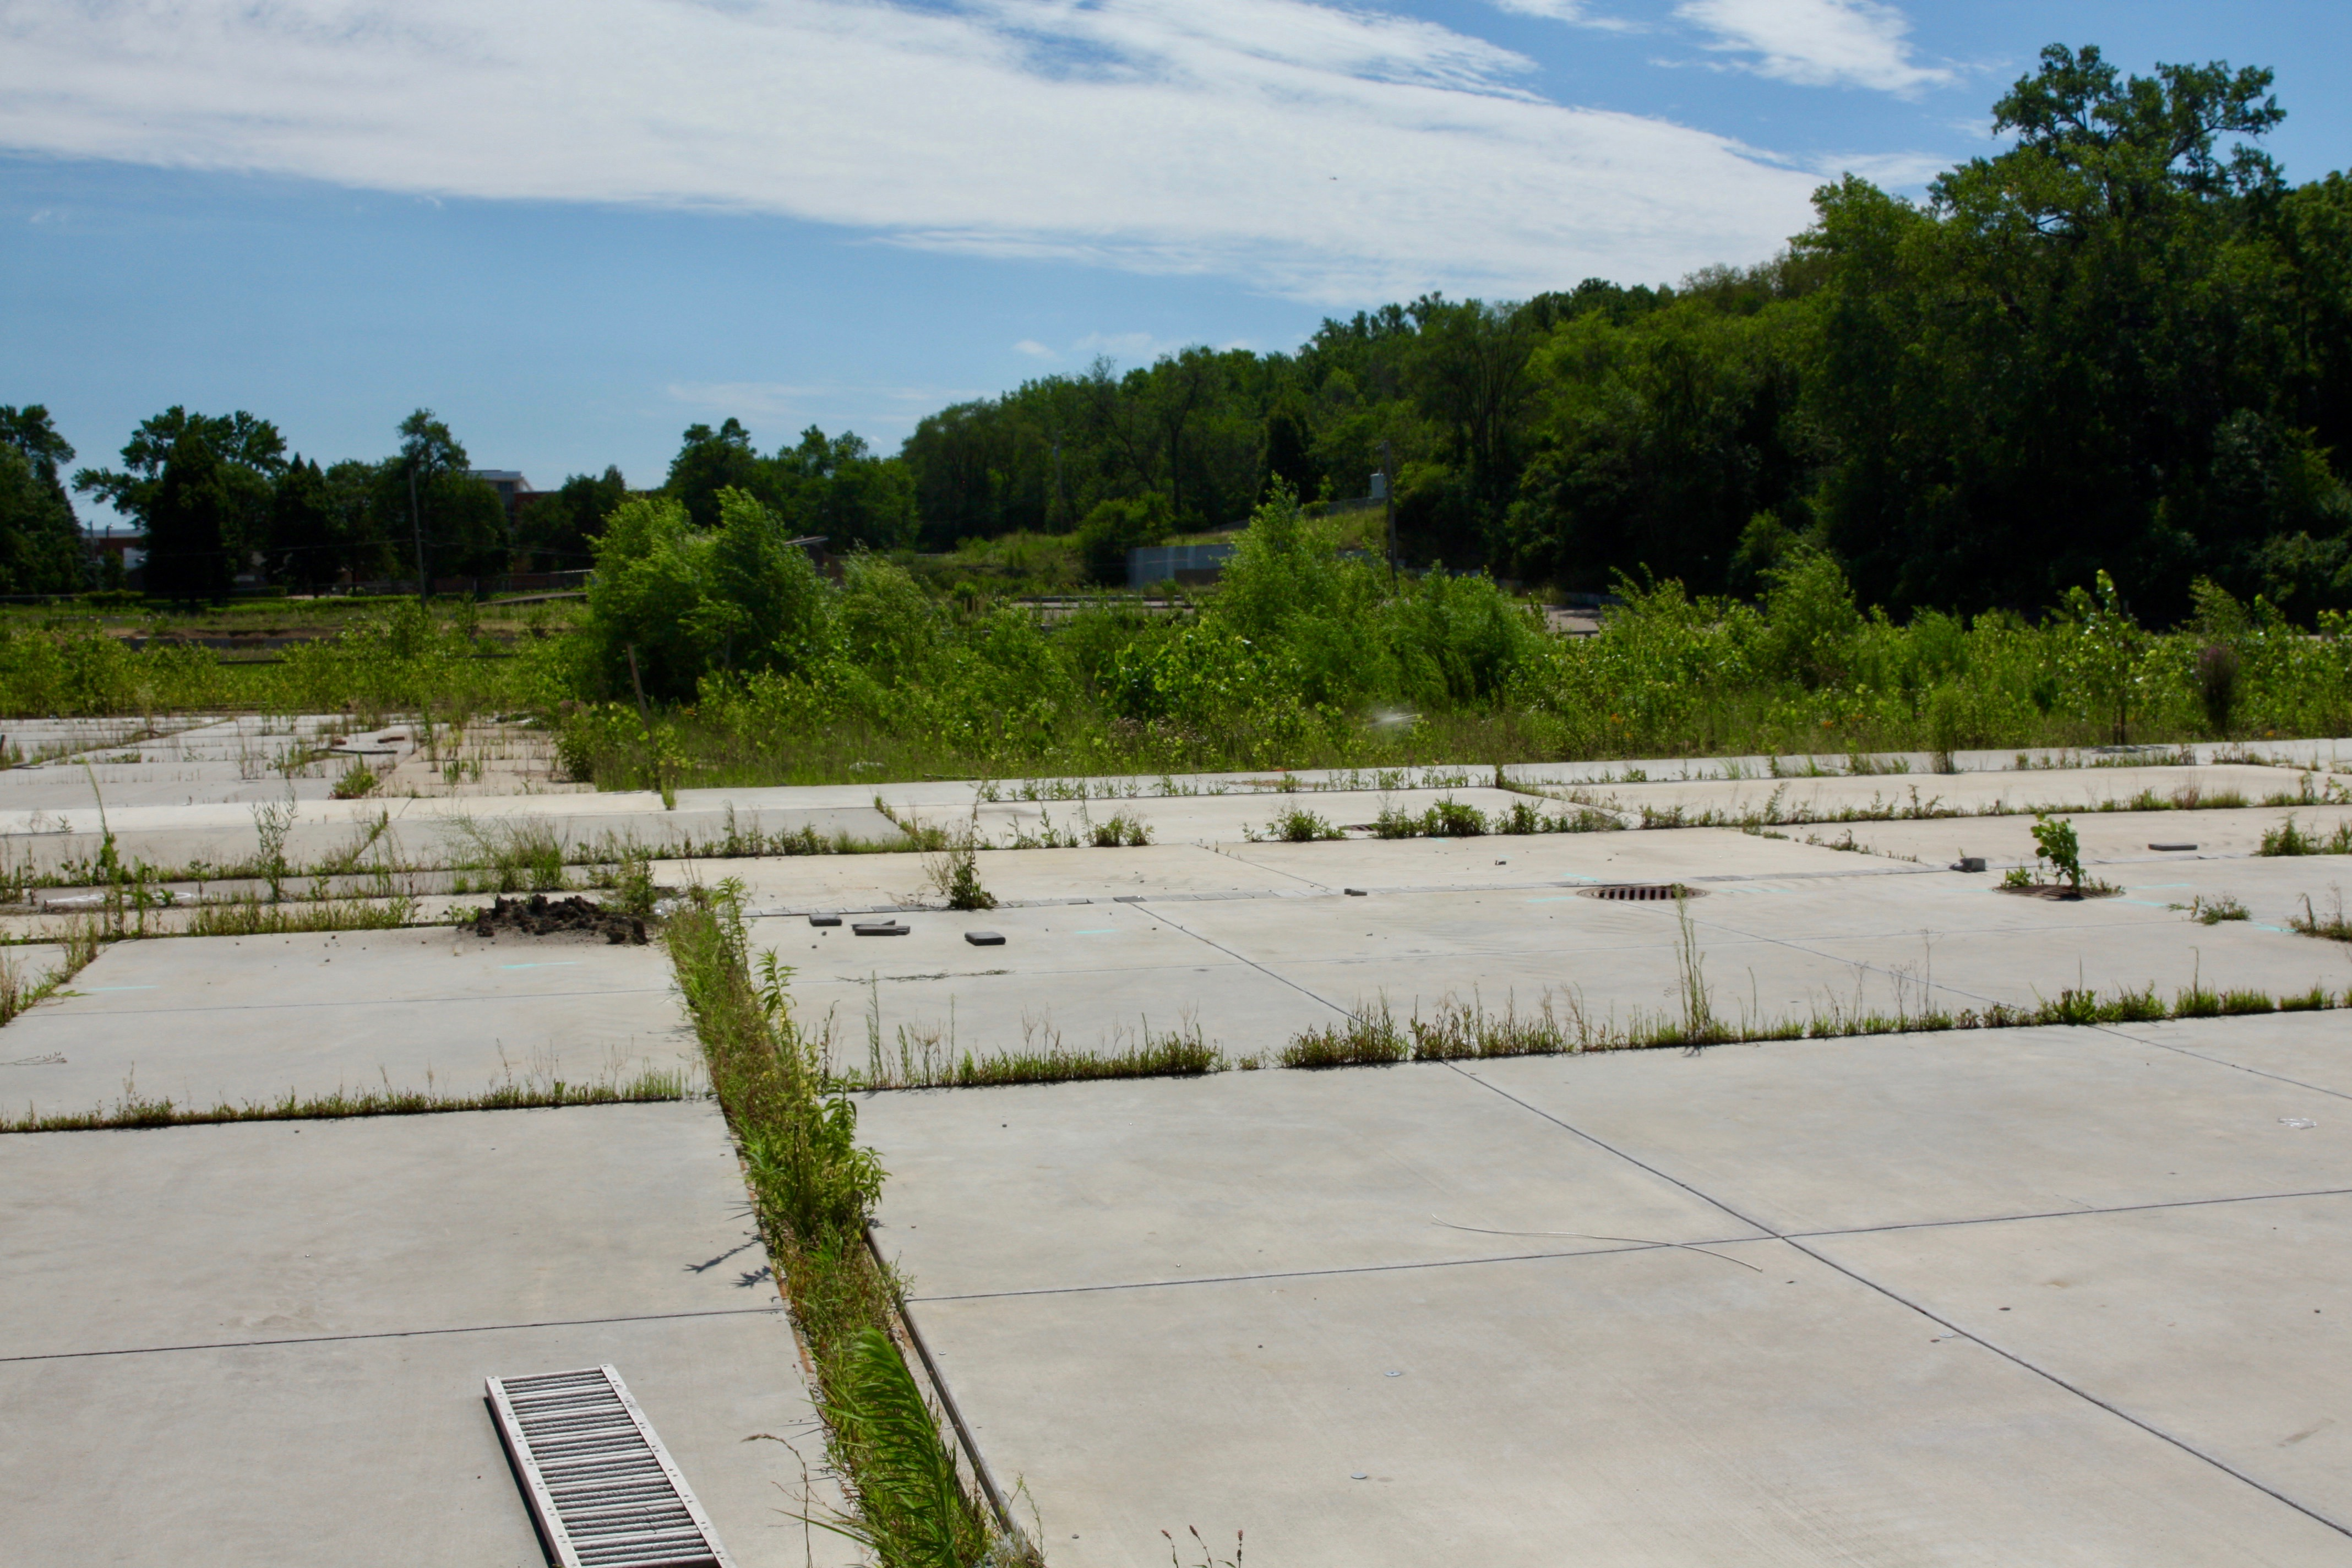 Concrete pads which may have been covered by greenhouses, perhaps appropriately continued to host flora. Beyond the concrete slabs were fields where Linder's grew some of the plants they sold.